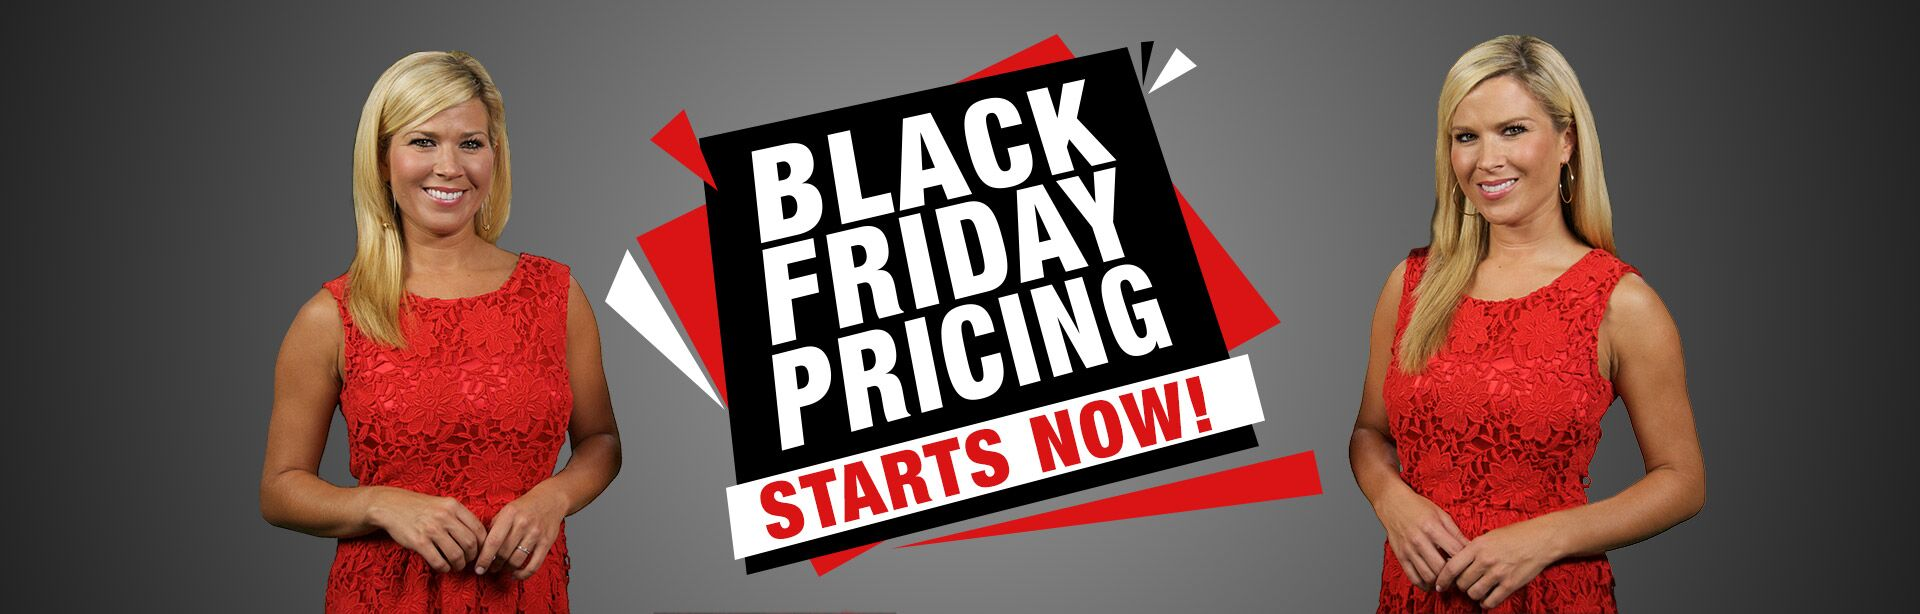 Black Friday Pricing